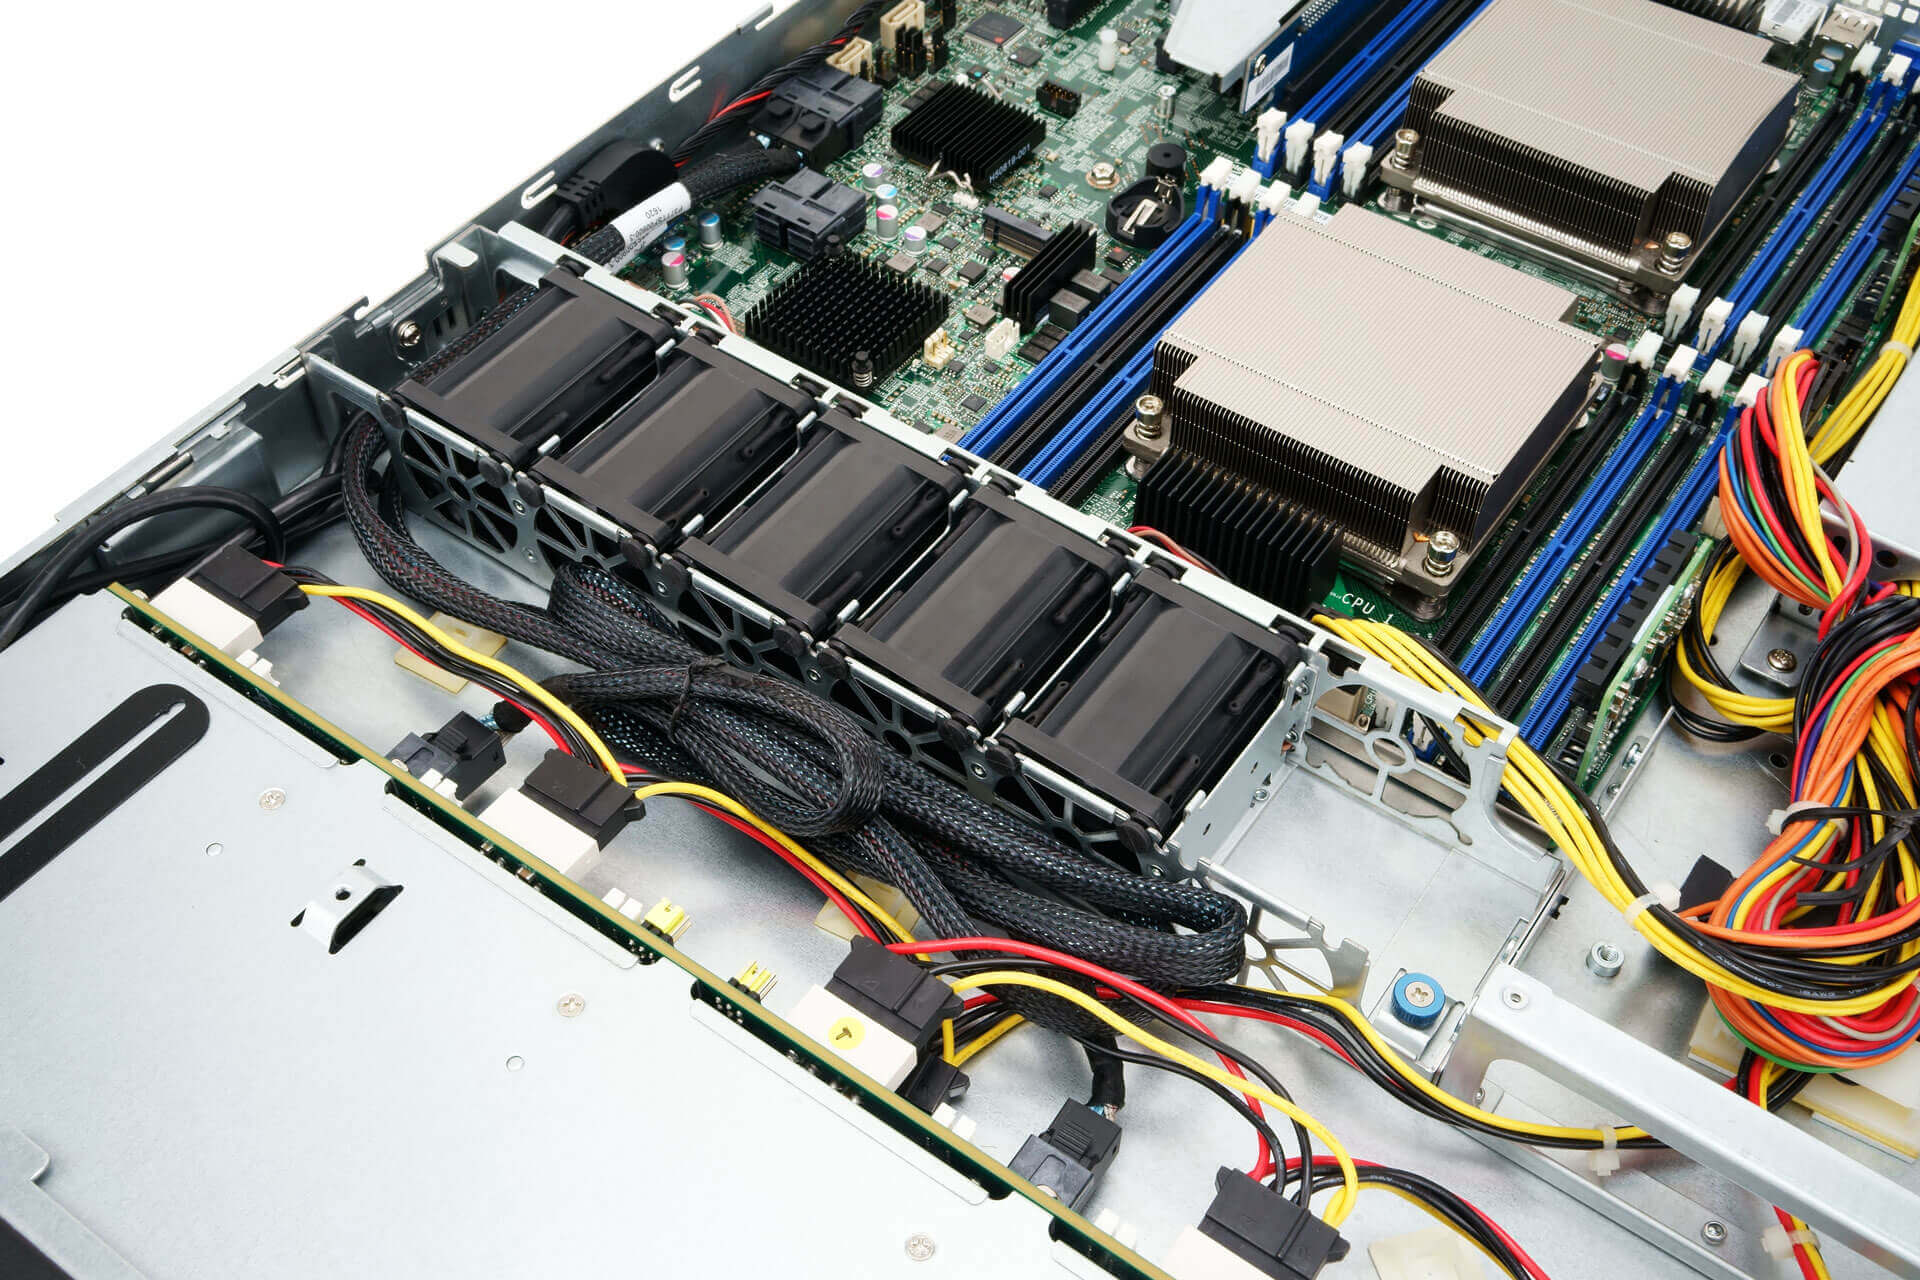 IW-RS110-02M - server system assembly